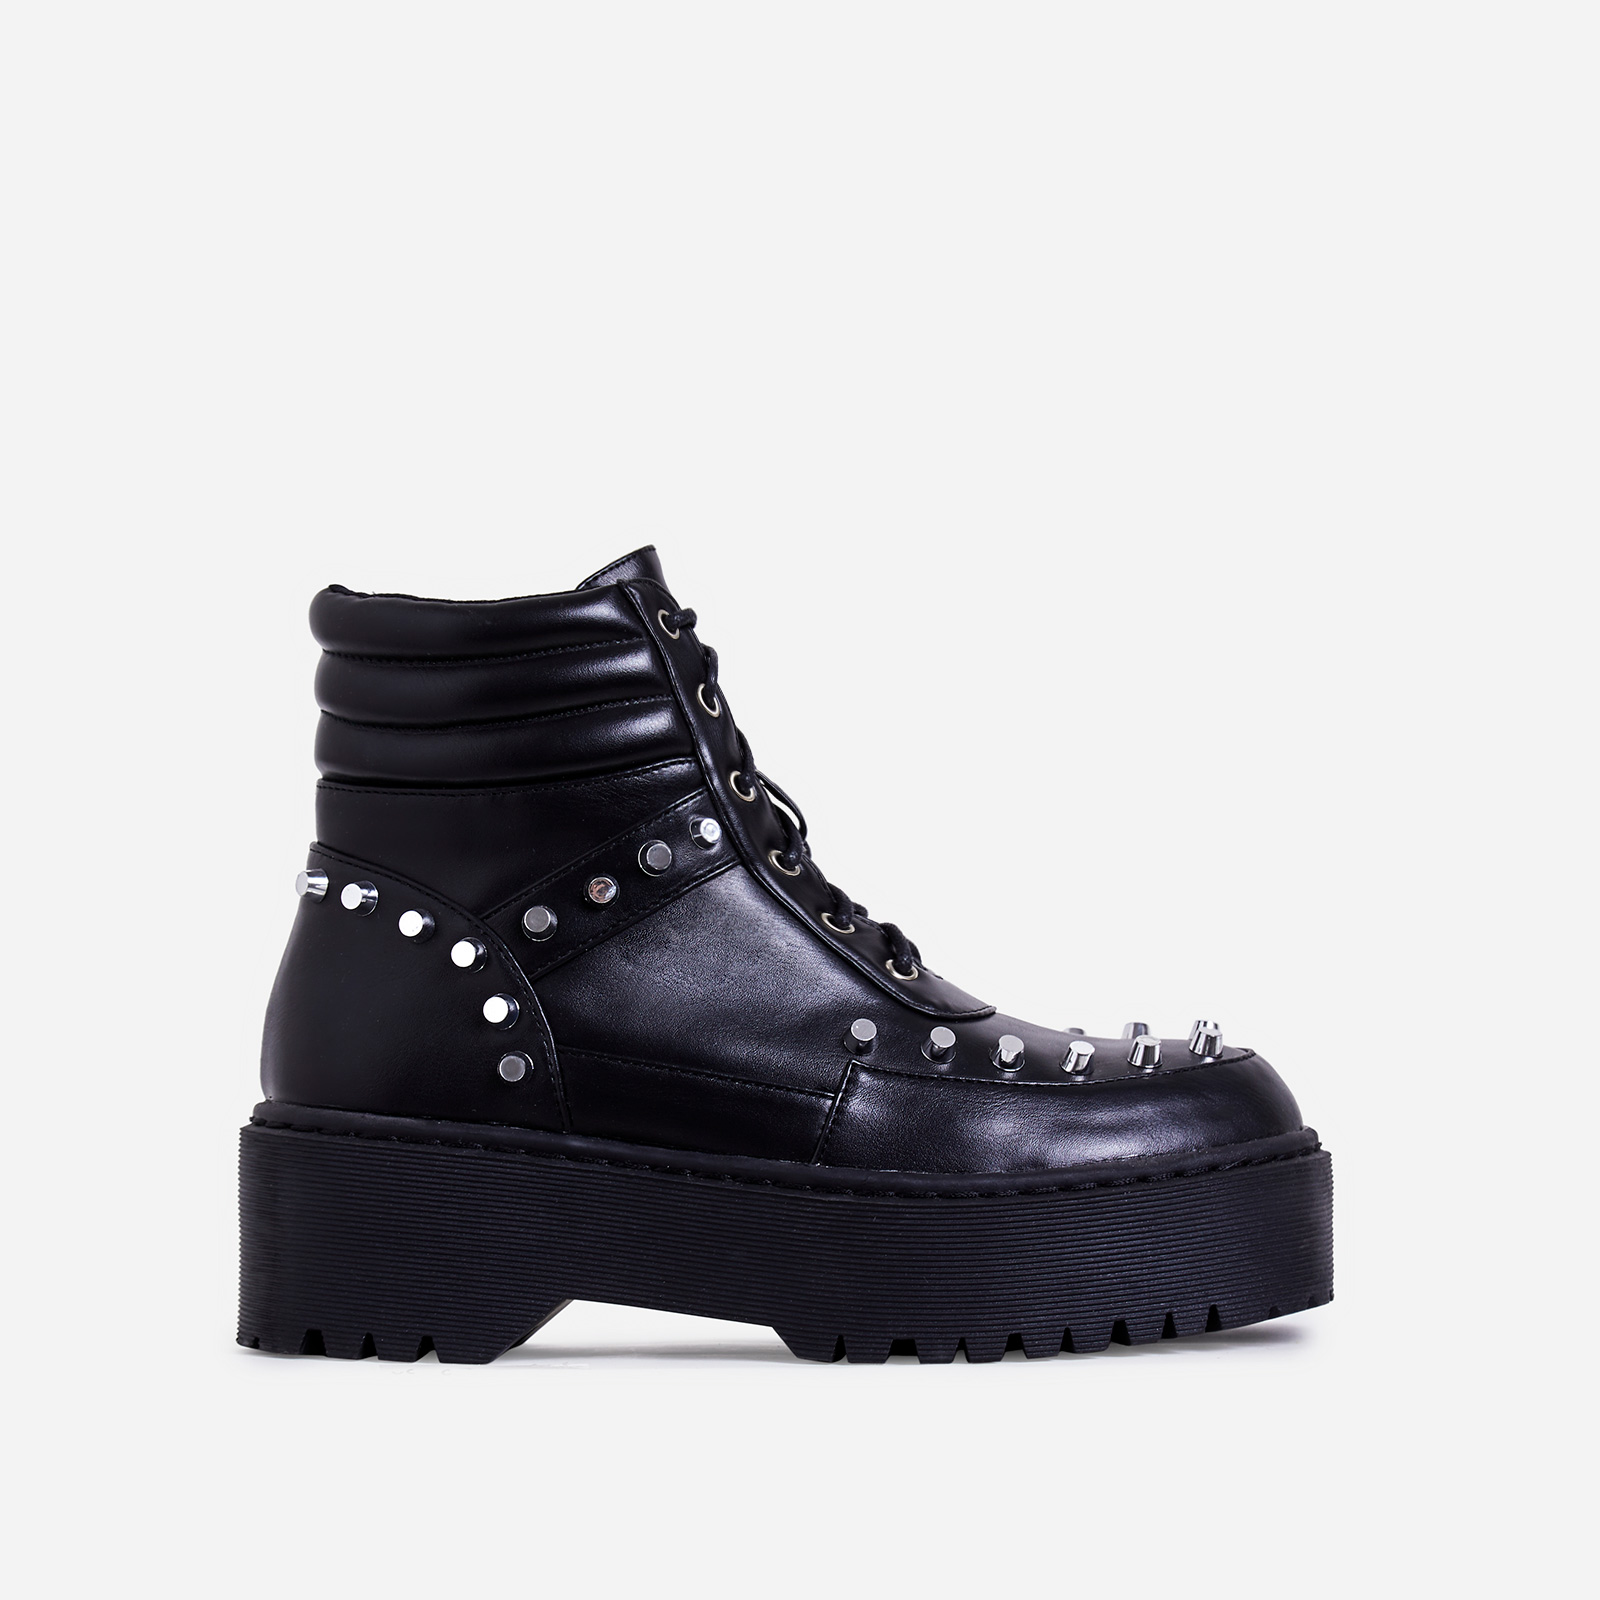 Lore Studded Detail Ankle Biker Boot In Black Faux Leather